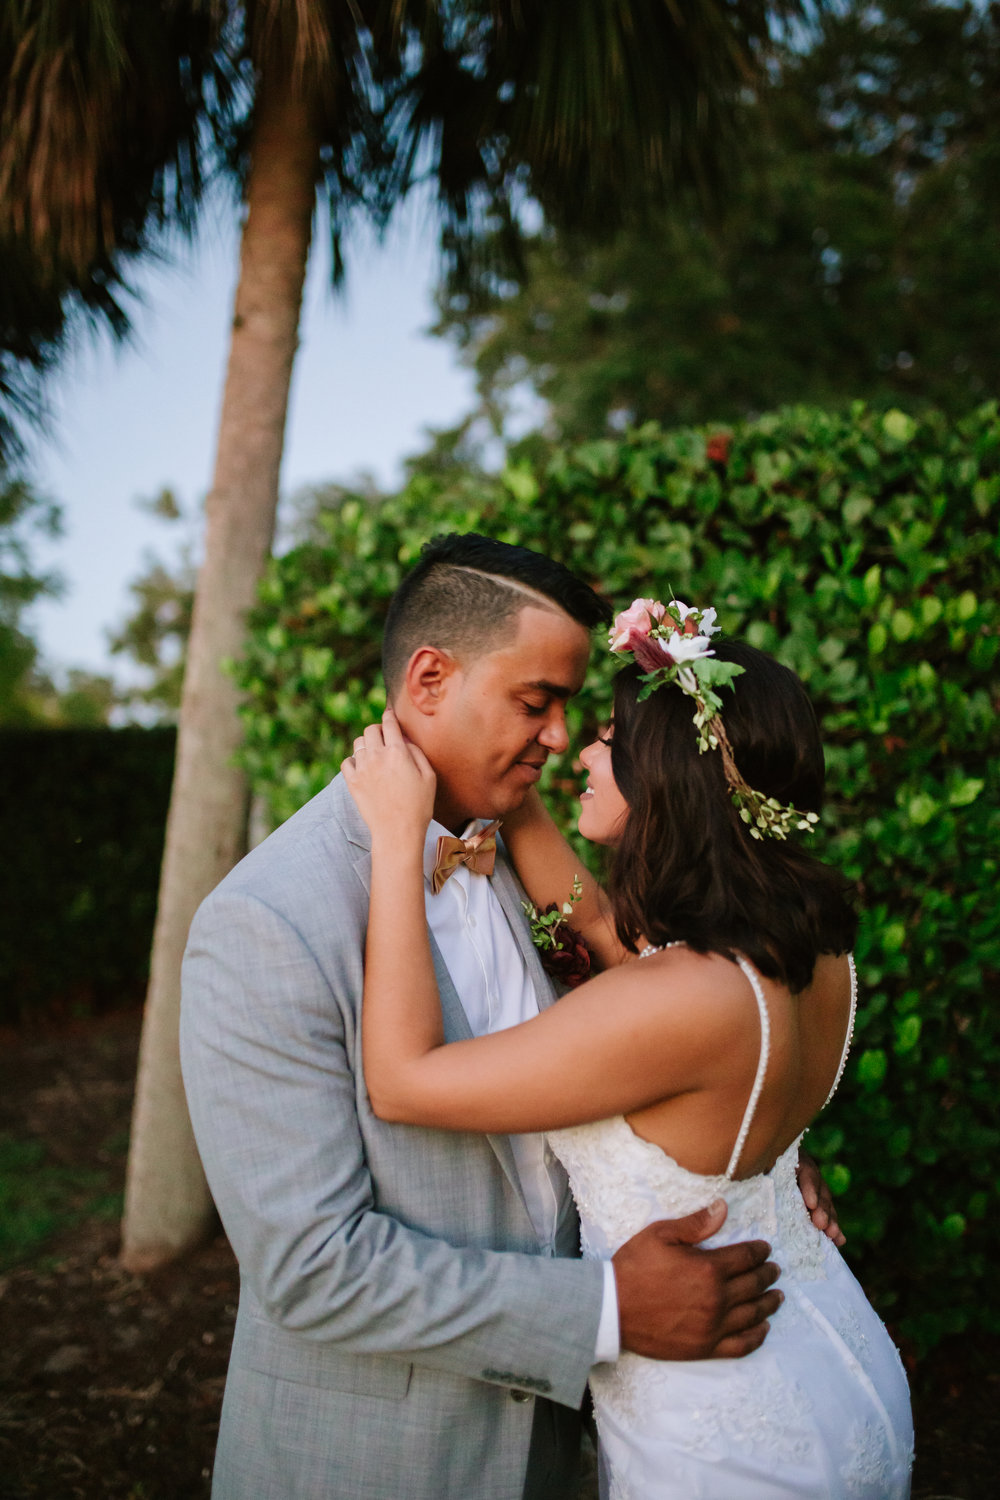 2017.05.23 Barbara and Mauricio Sales Port St Lucie Wedding (512 of 772).jpg